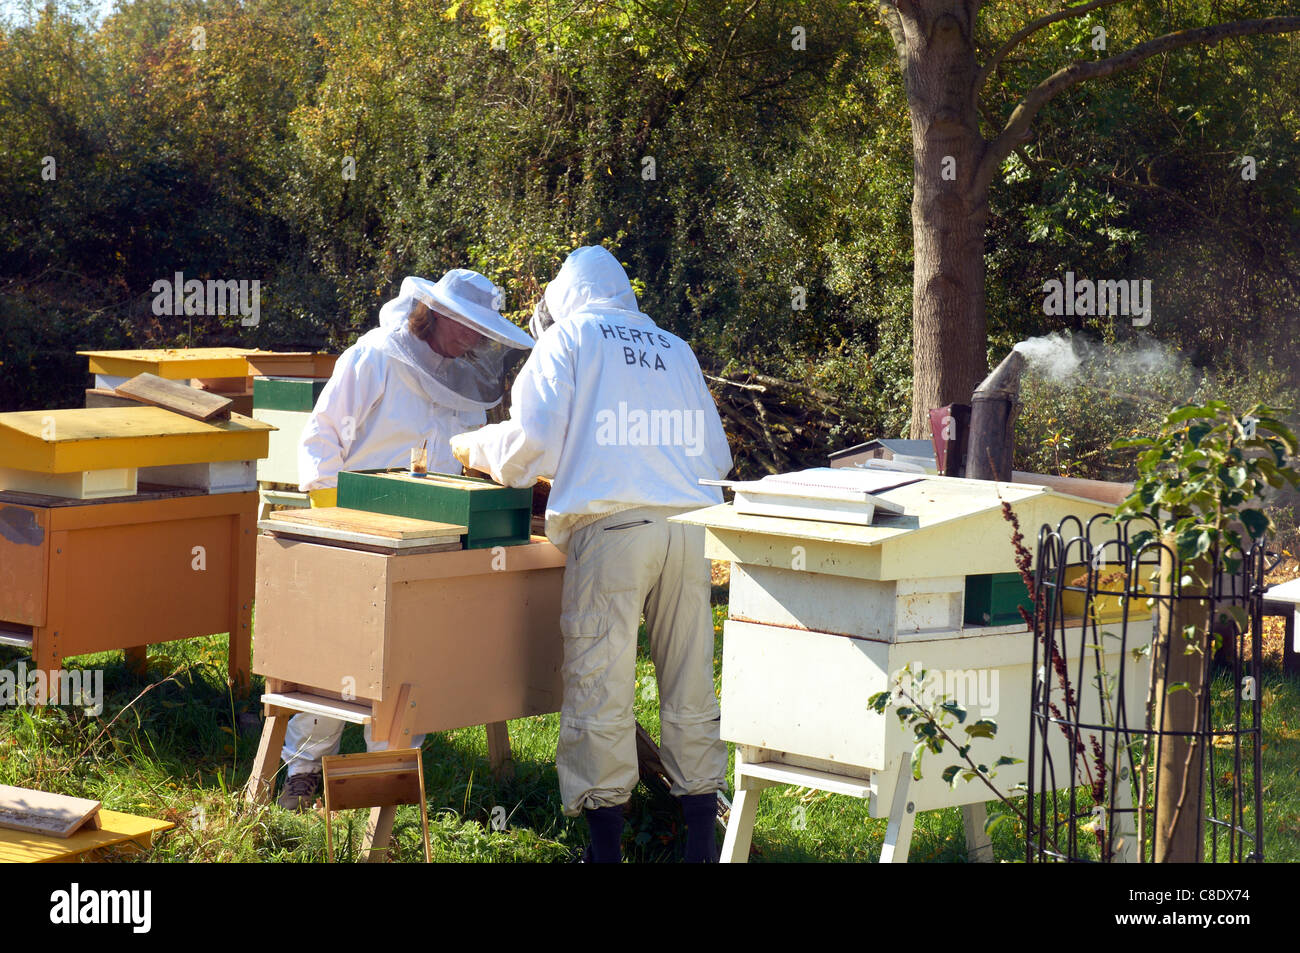 Two Beekeepers checking the Hives before Winter, UK - Stock Image